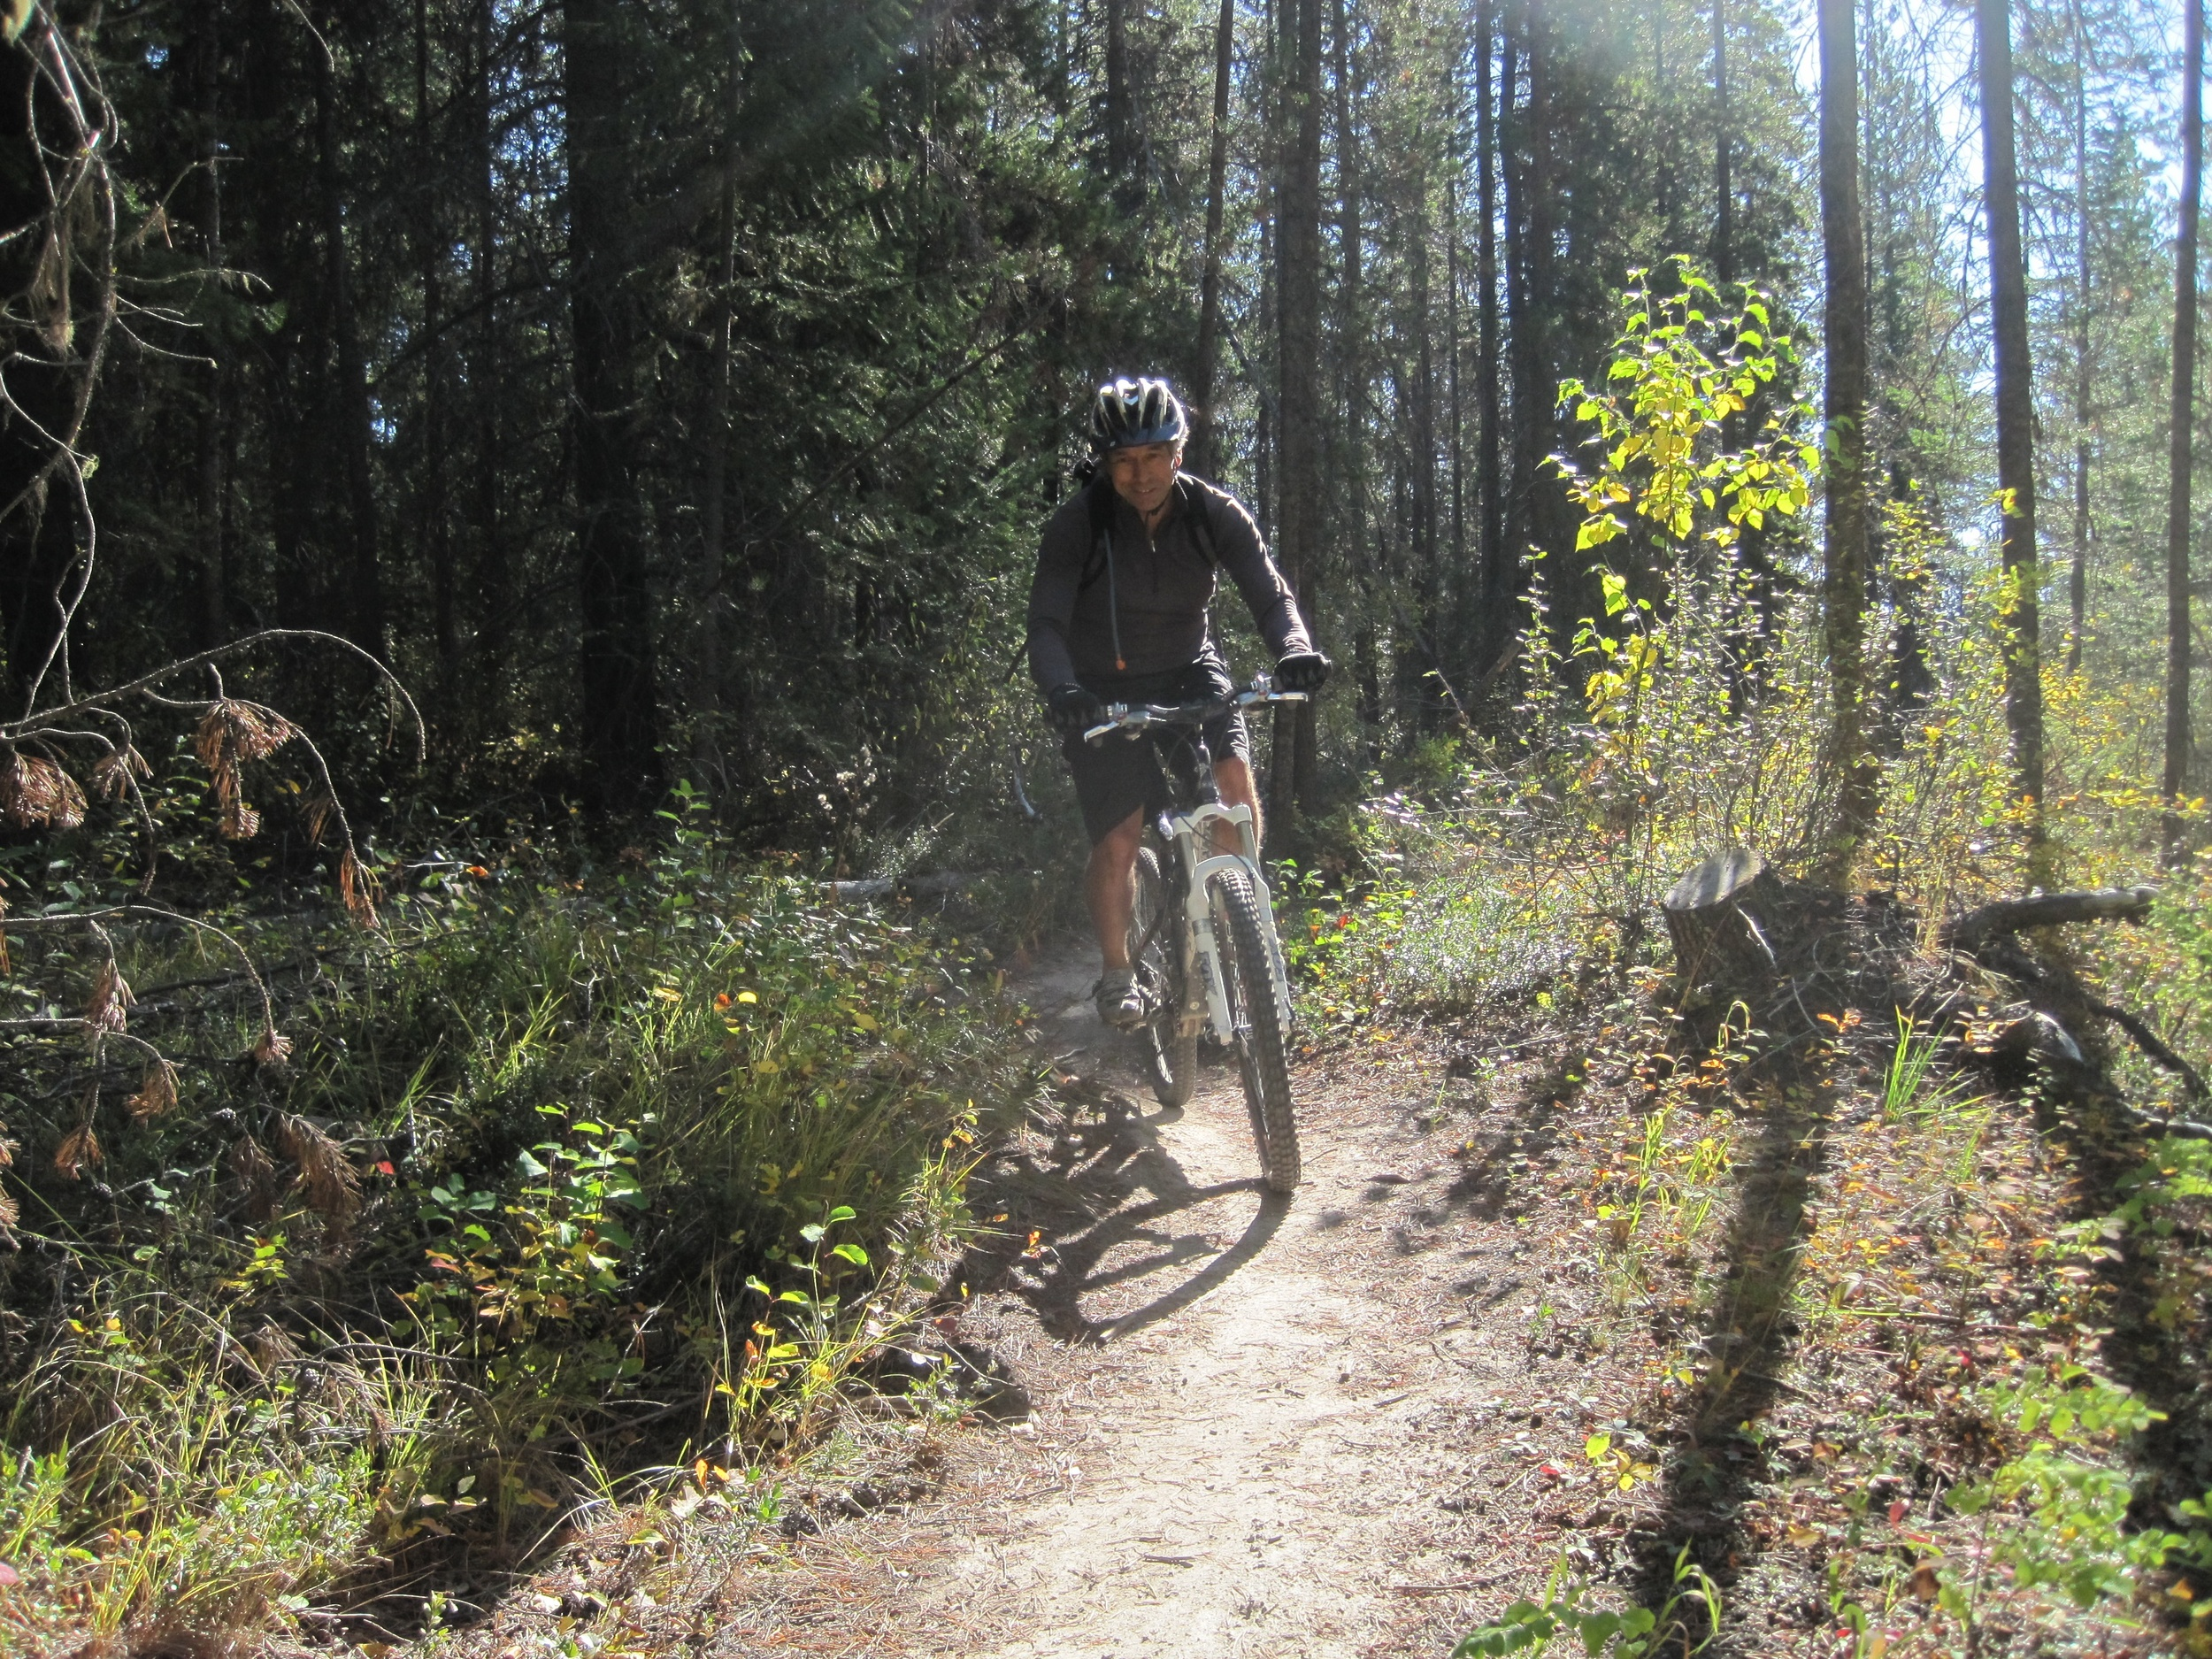 Rick enjoying the trails on his mountain bike.